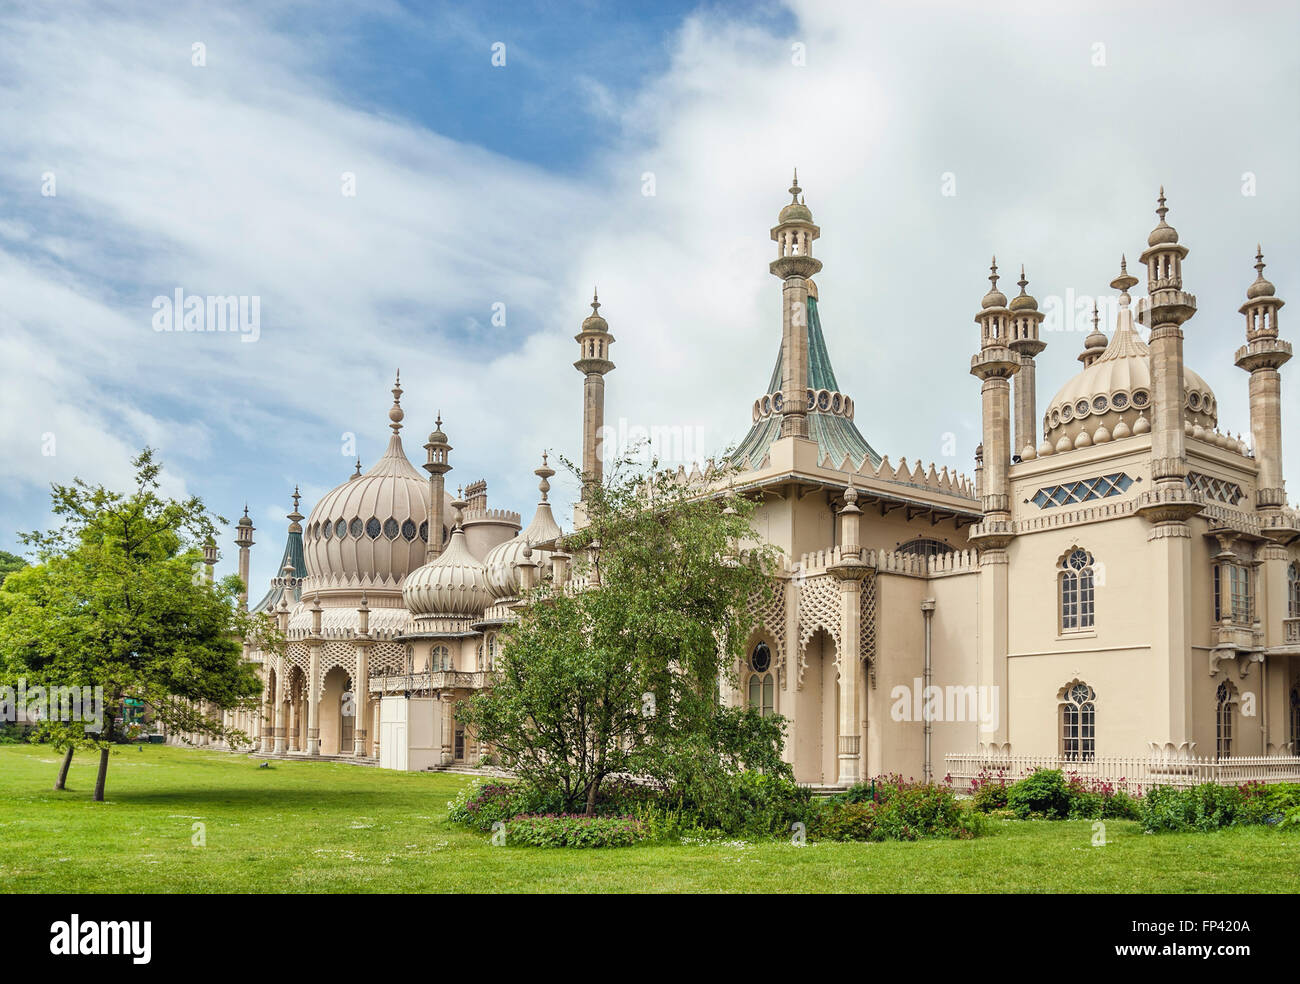 Historical Royal Pavilion in Spring, Brighton. East Sussex, South England. - Stock Image